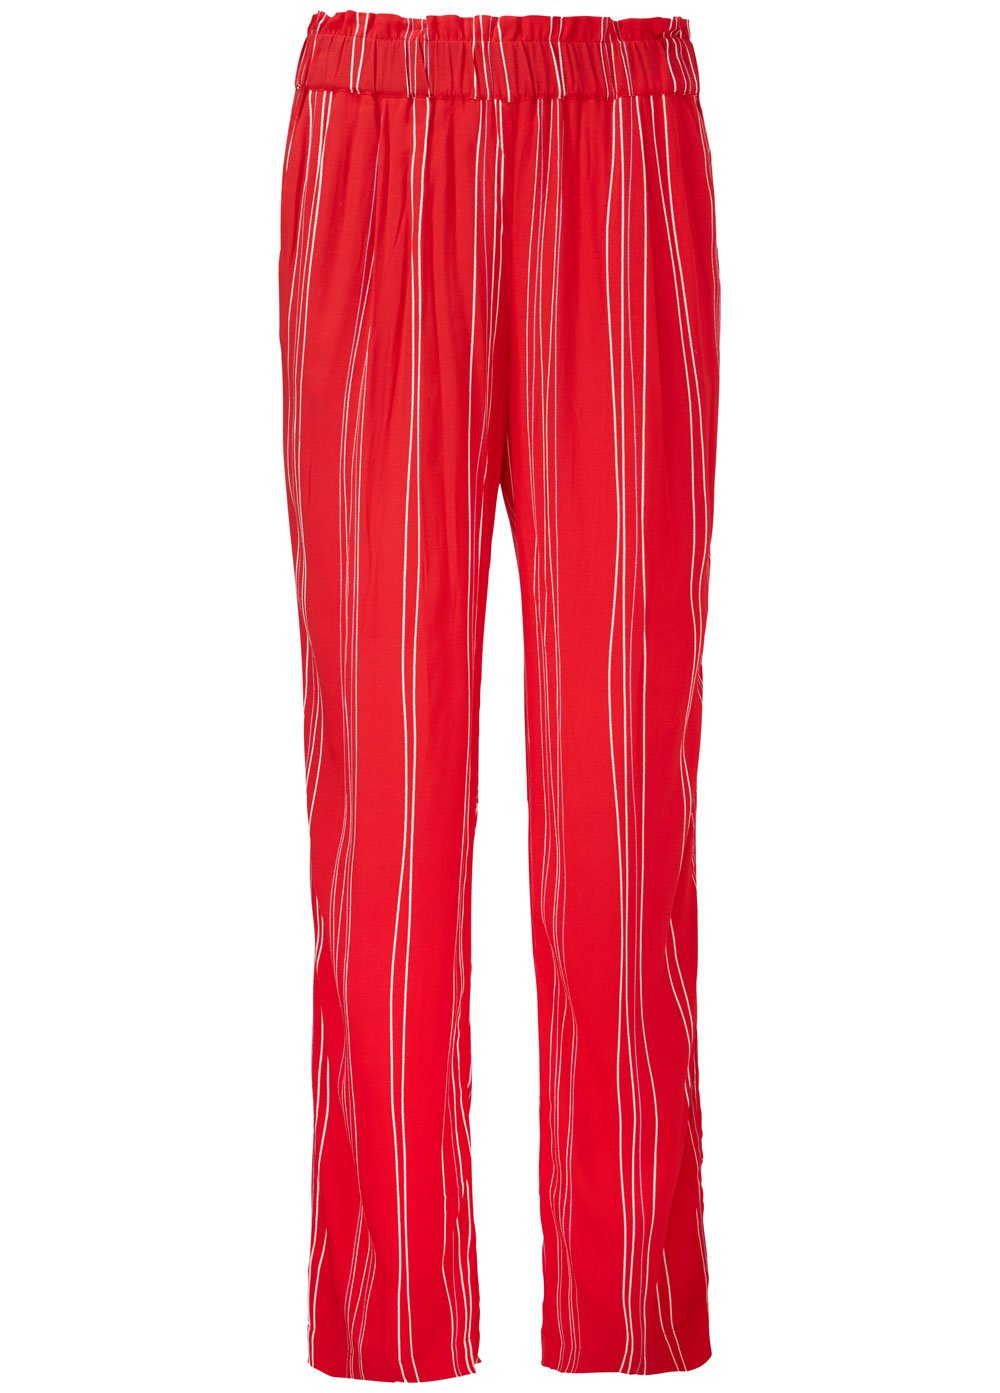 Grazie Print Pant - Red Stripe